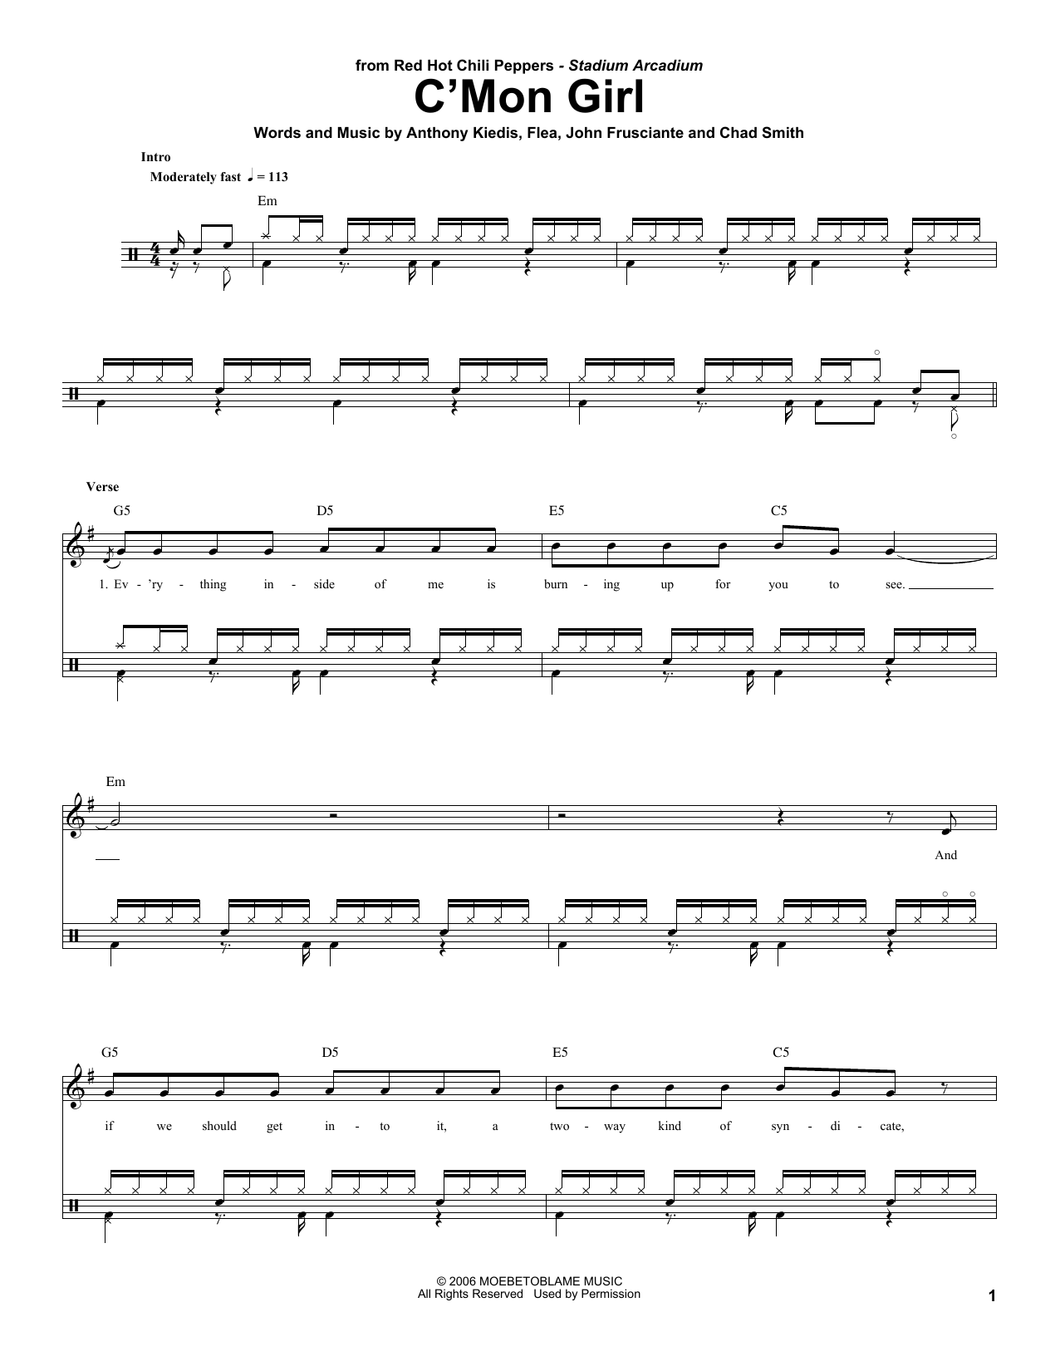 C'Mon Girl - Red Hot Chili Peppers - Full Drum Transcription / Drum Sheet Music - SheetMusicDirect DT